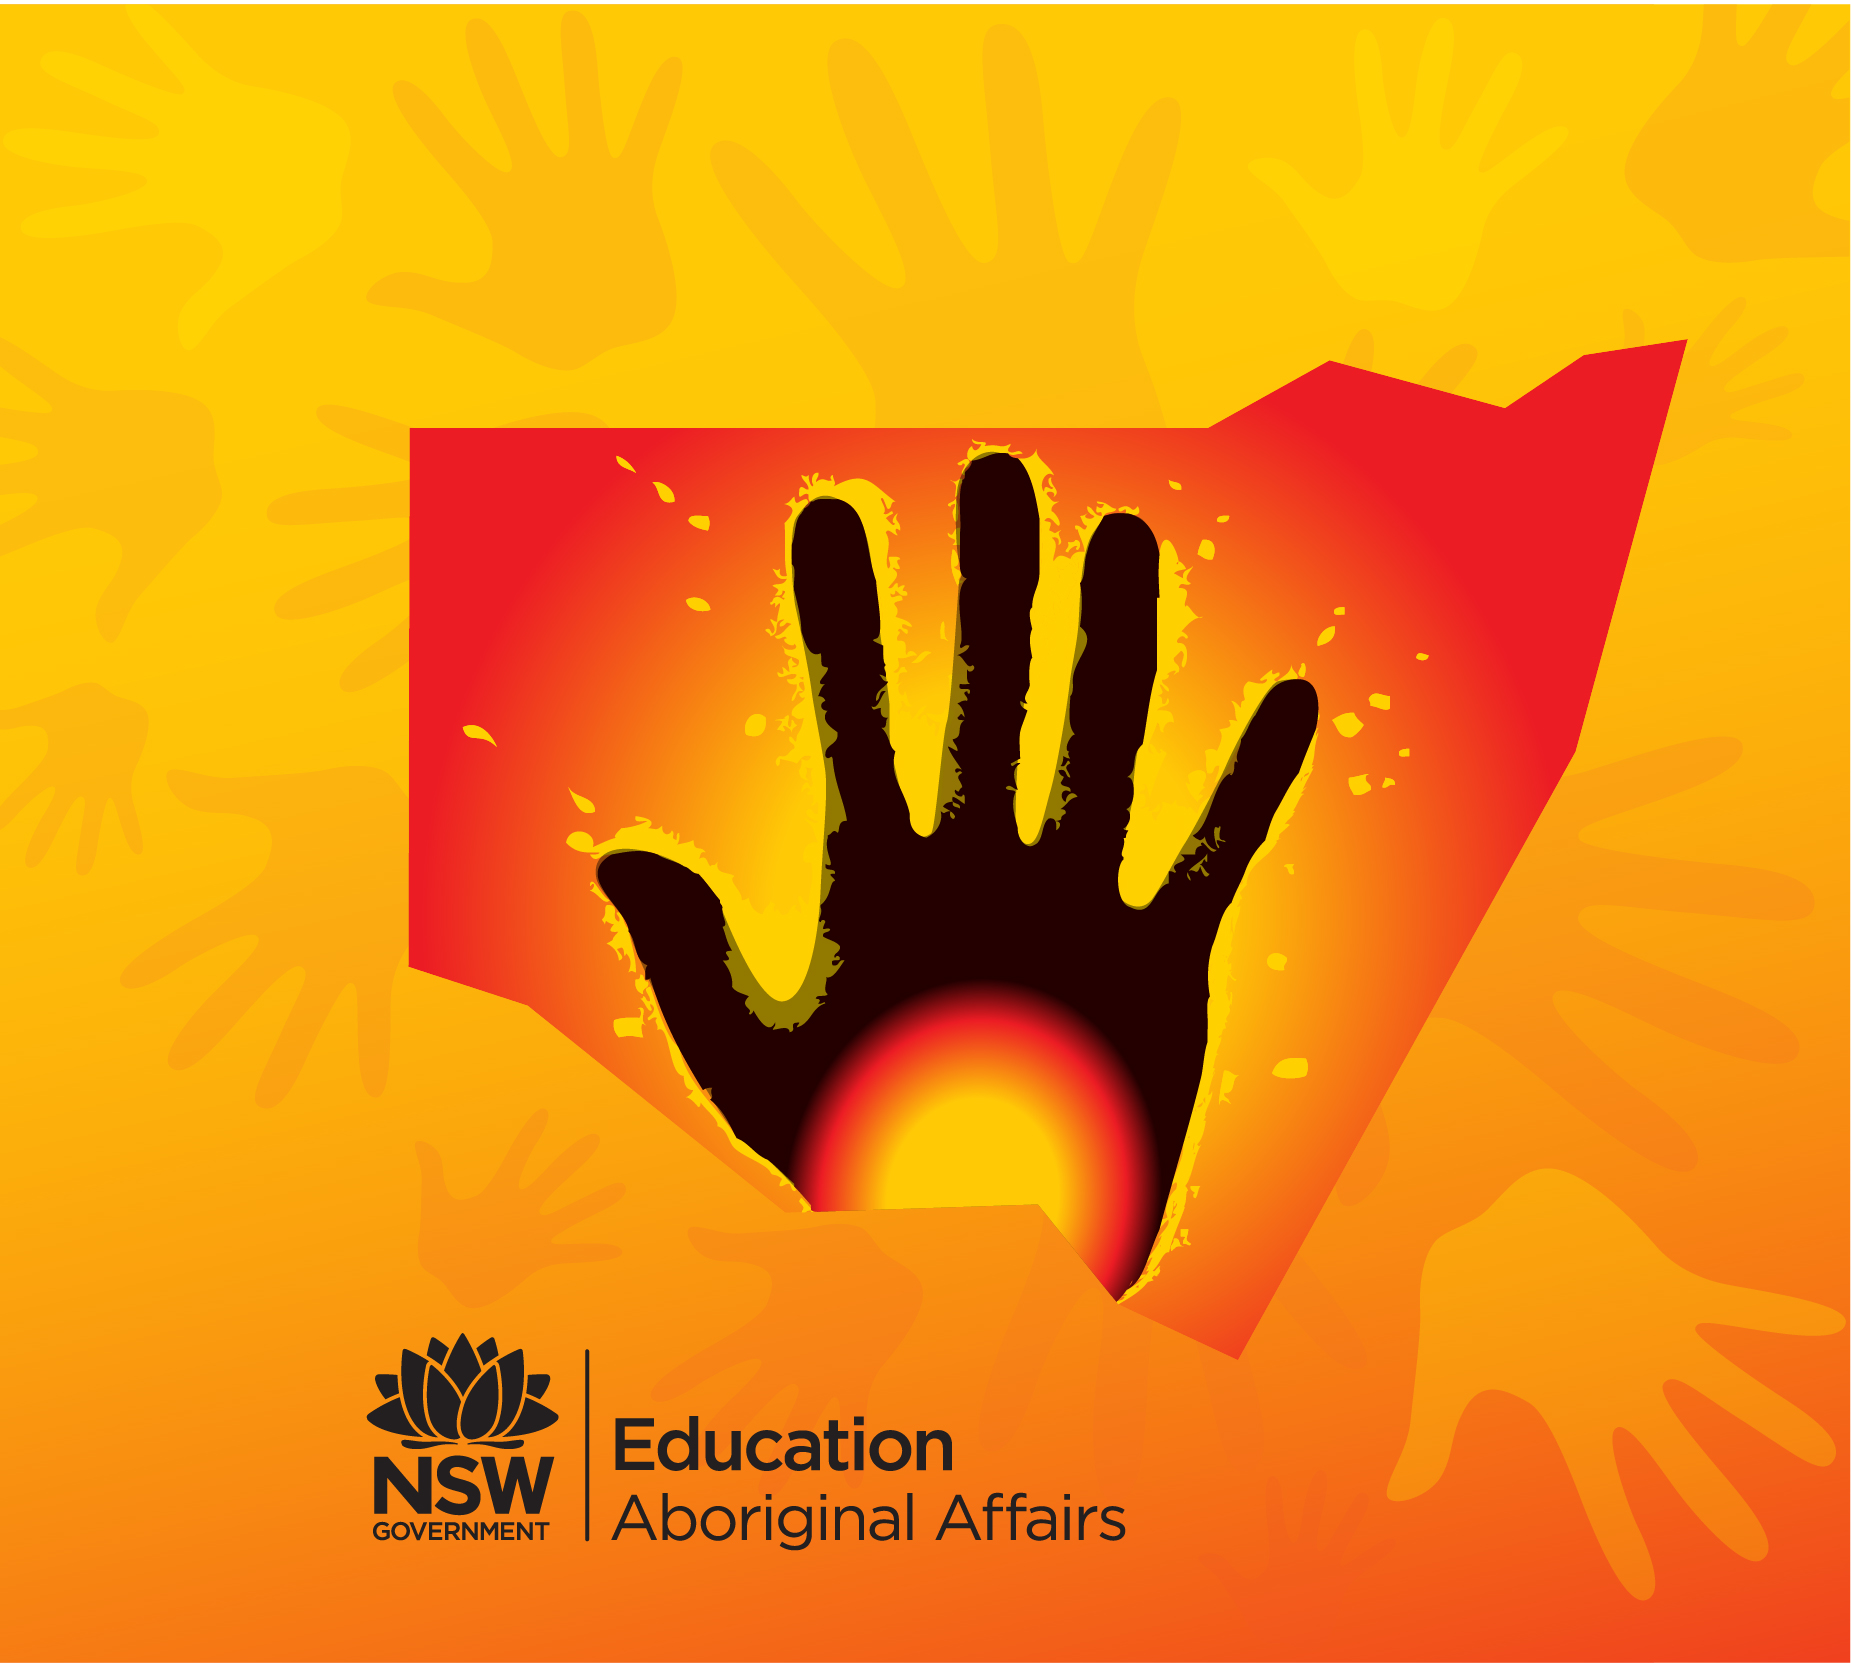 Education Aboriginal Affairs | I work for NSW